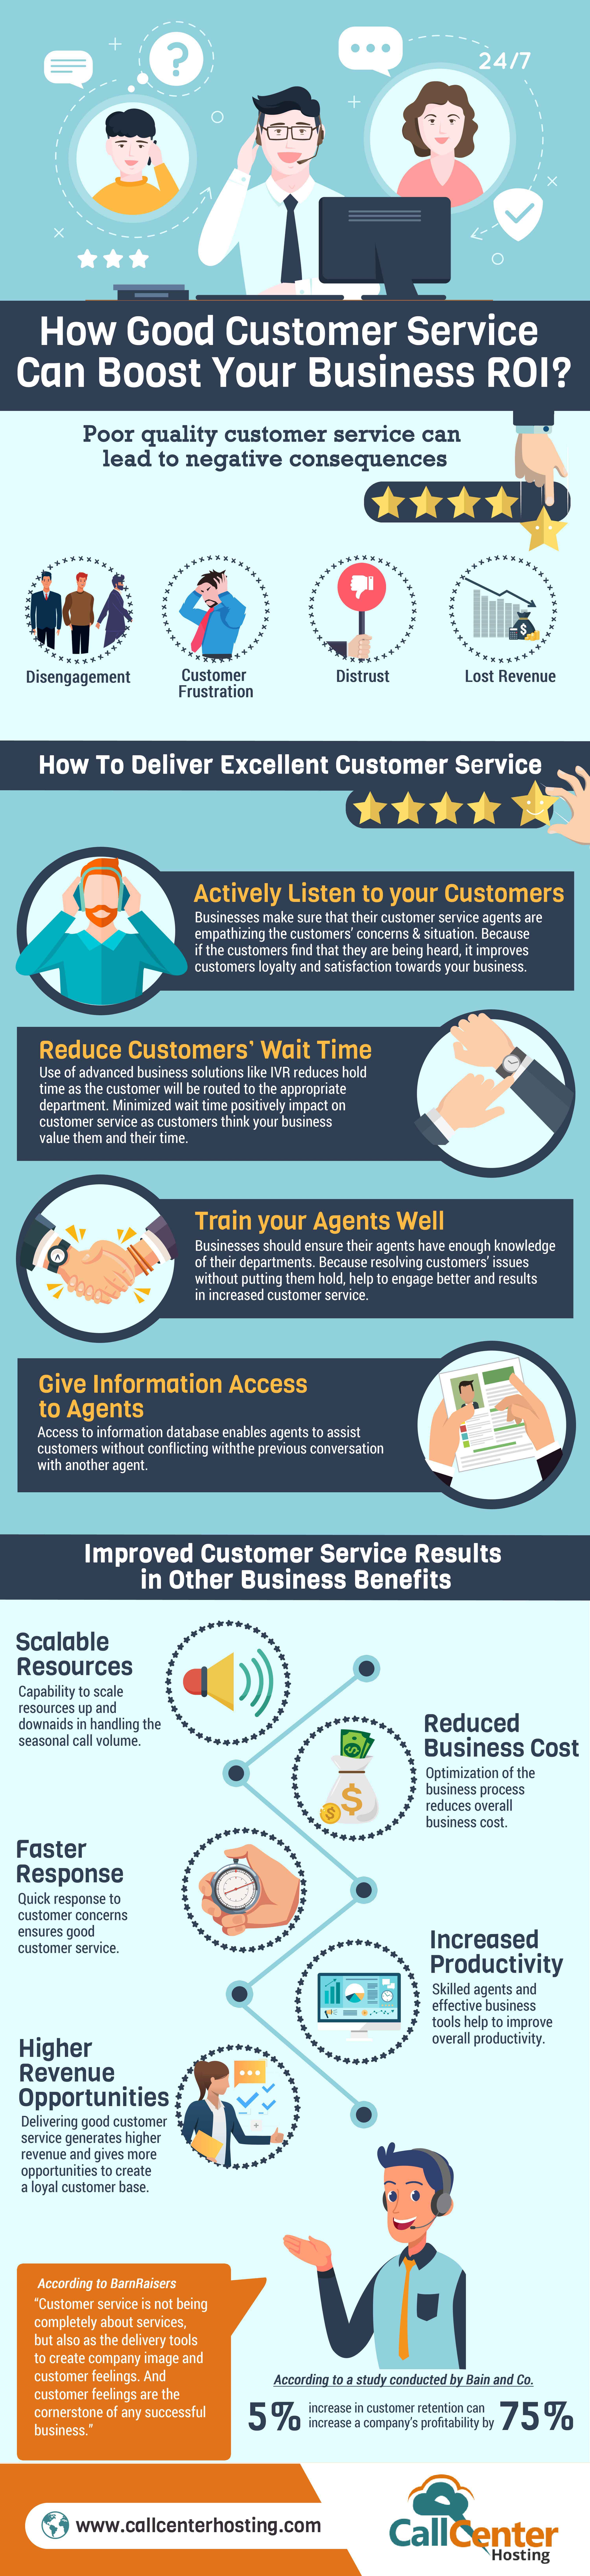 Infographic- How Good Customer Service Can Boost Your Business ROI